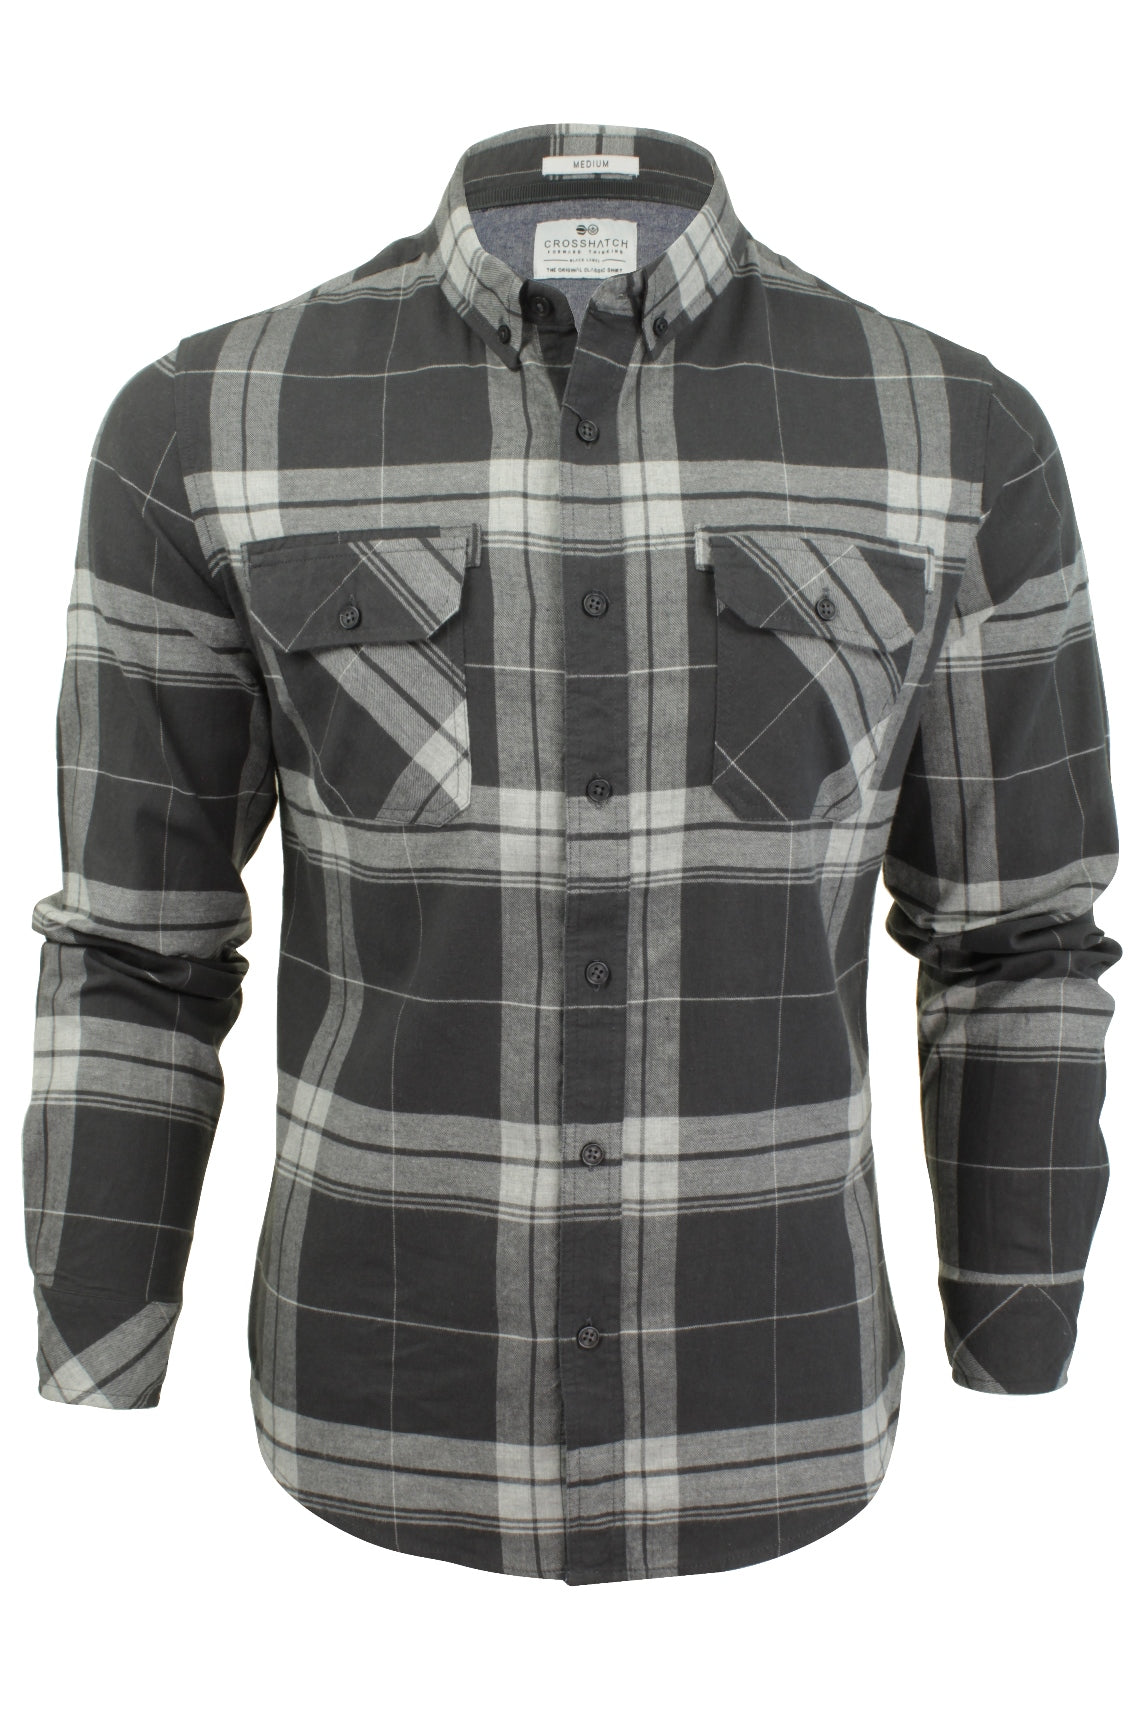 Mens Check Shirt by Crosshatch 'Mitty' Long Sleeved-2